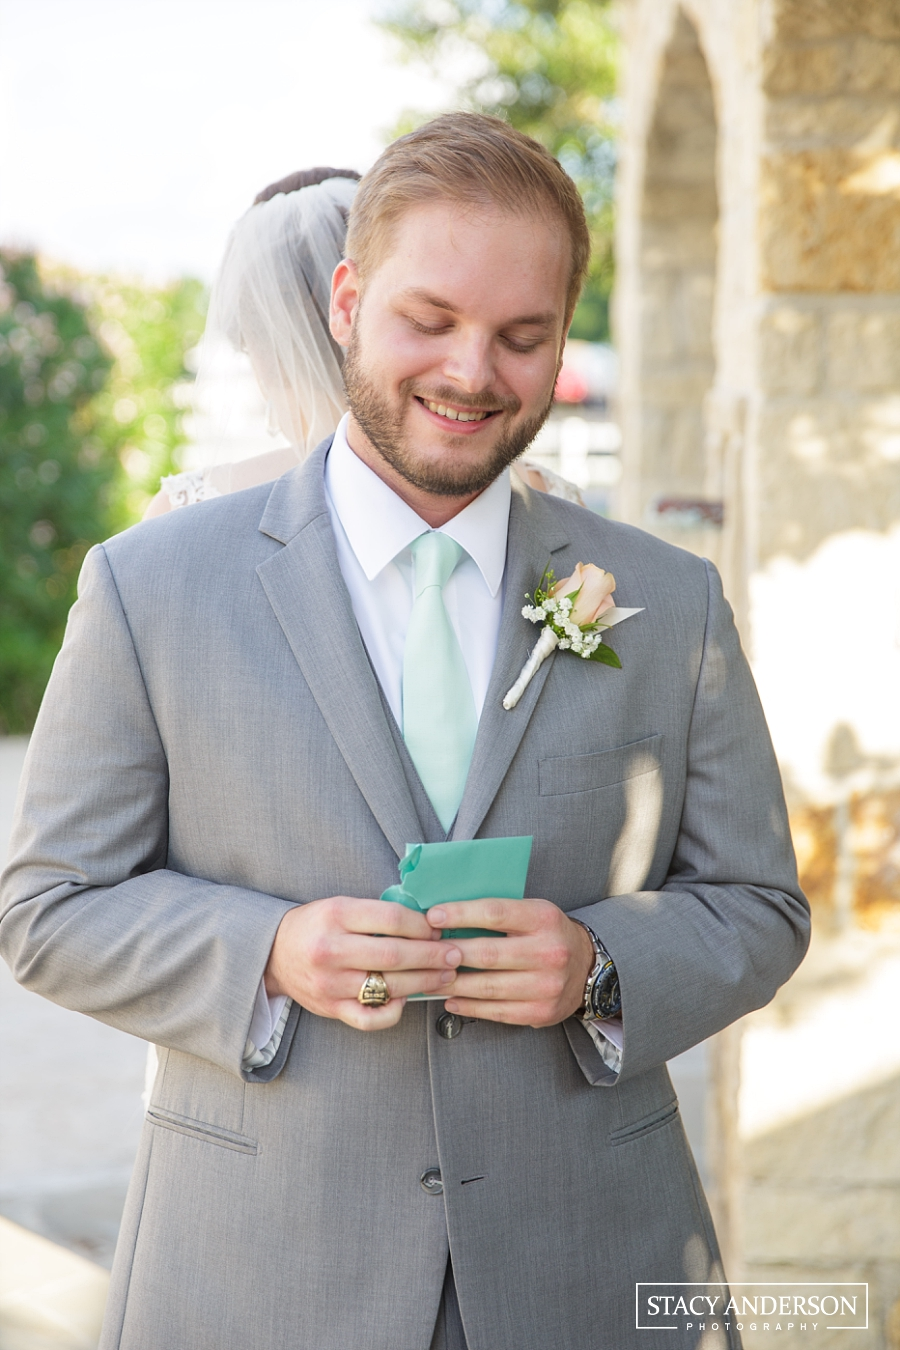 Stacy Anderson Photography Briscoe Manor Wedding Photographer_0079